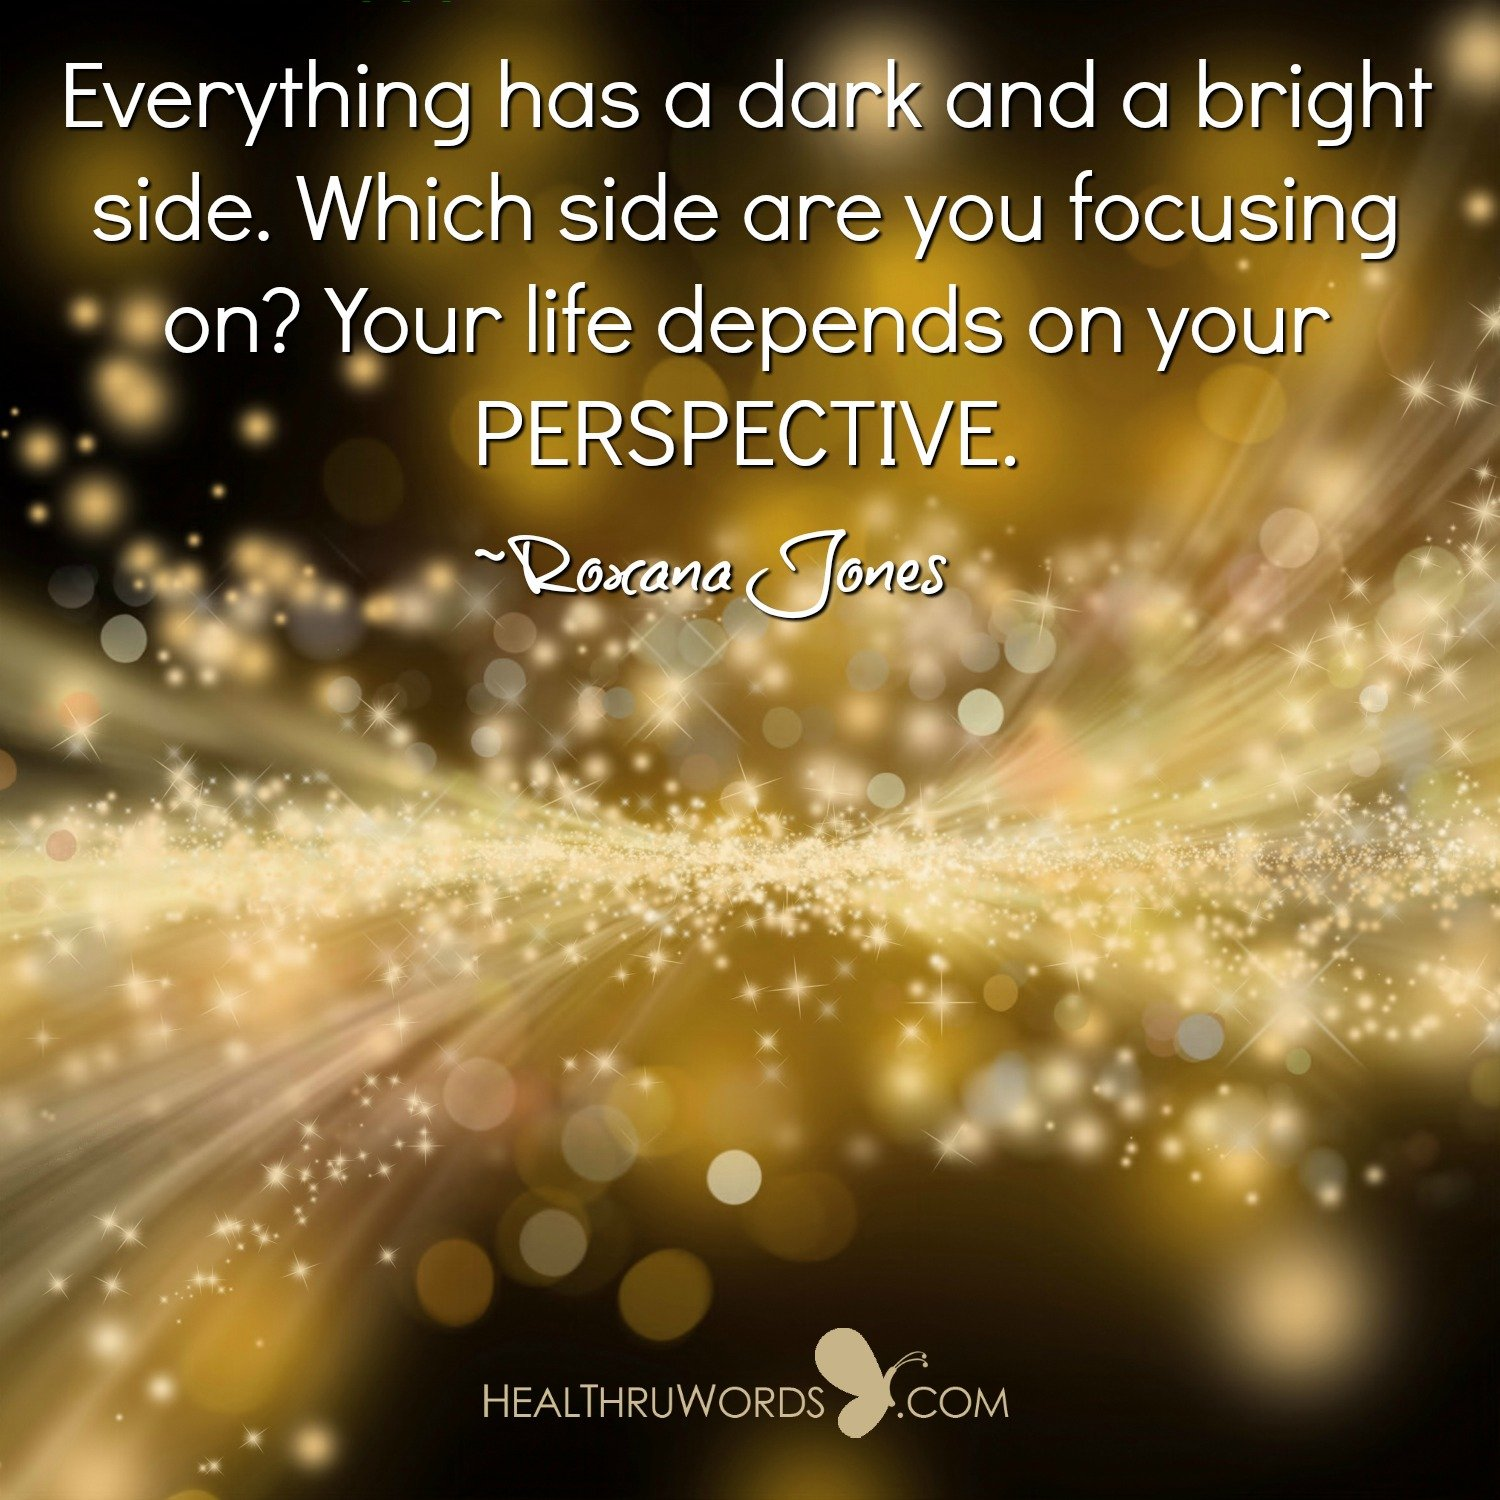 Inspirational Image: Perspective